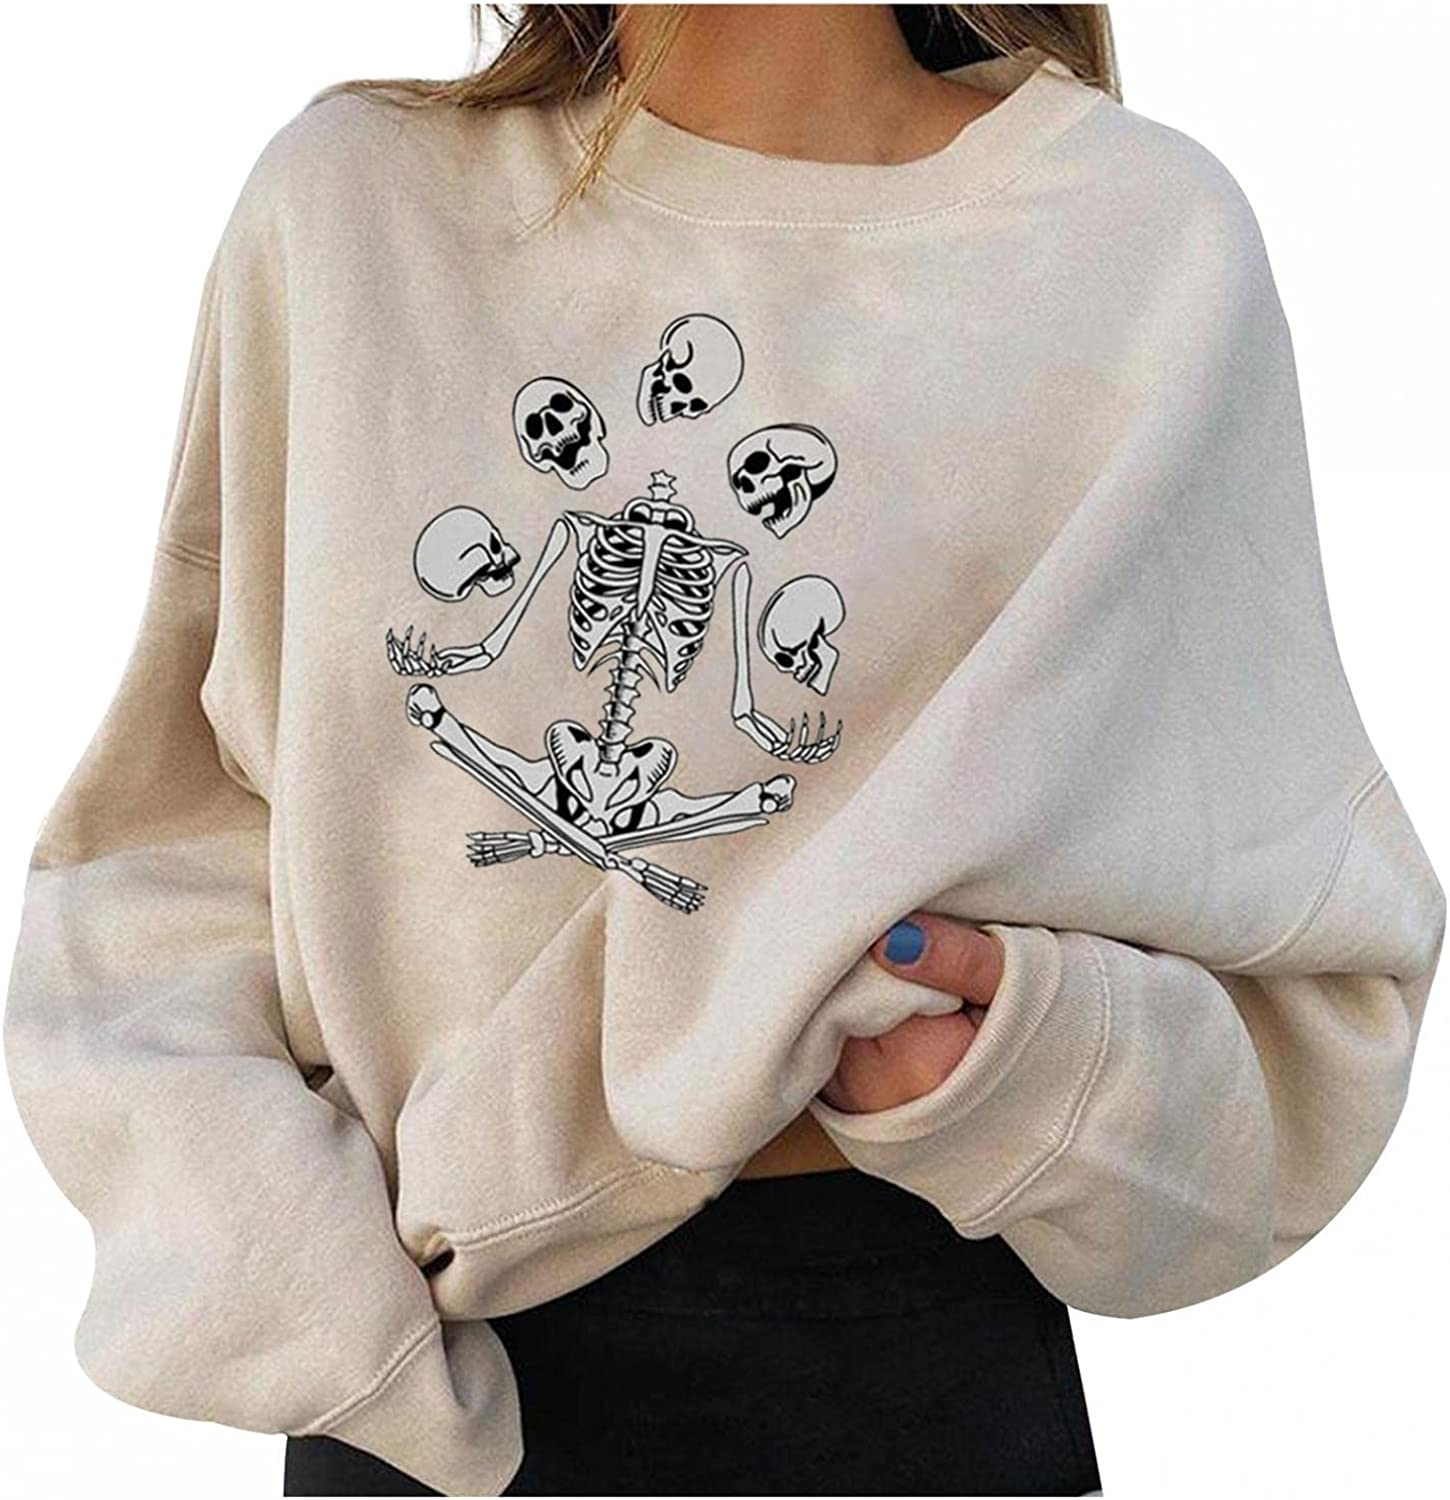 Oversized Sweatshirt for Women Vintage Cute Graphic Long Sleeve Casual Loose Crewneck Pullover Sweaters Tops Shirts